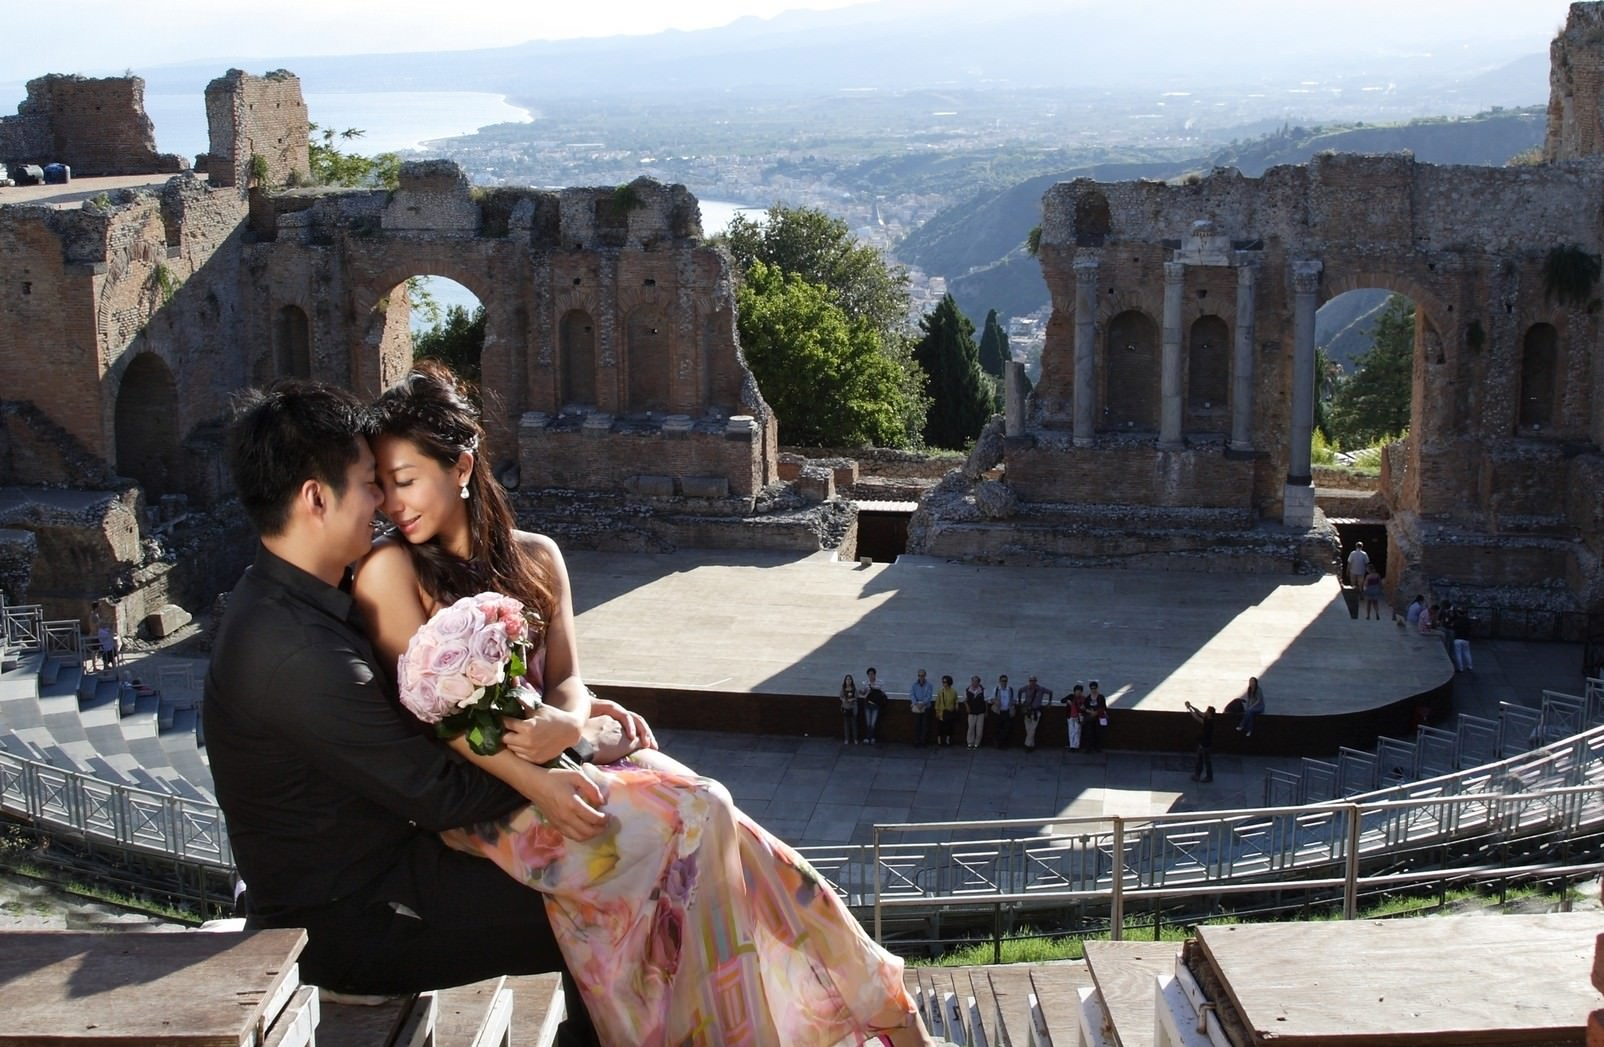 wedding in sicily italy